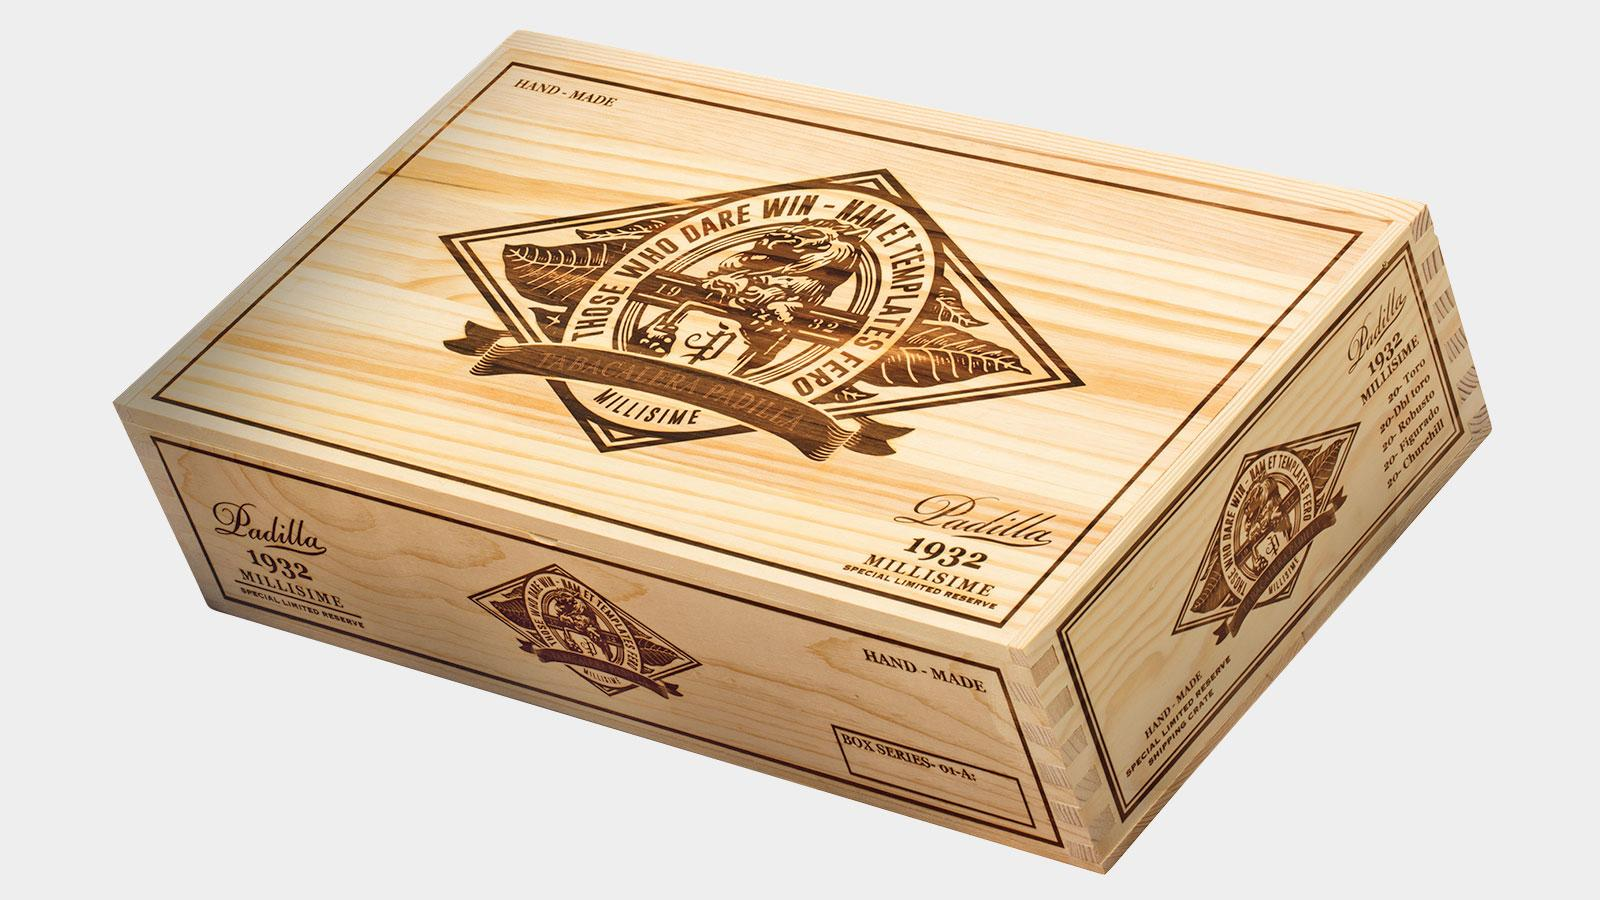 The packaging for Padilla 1932 Millisime is a take on what you would find in a crate of fine wines.